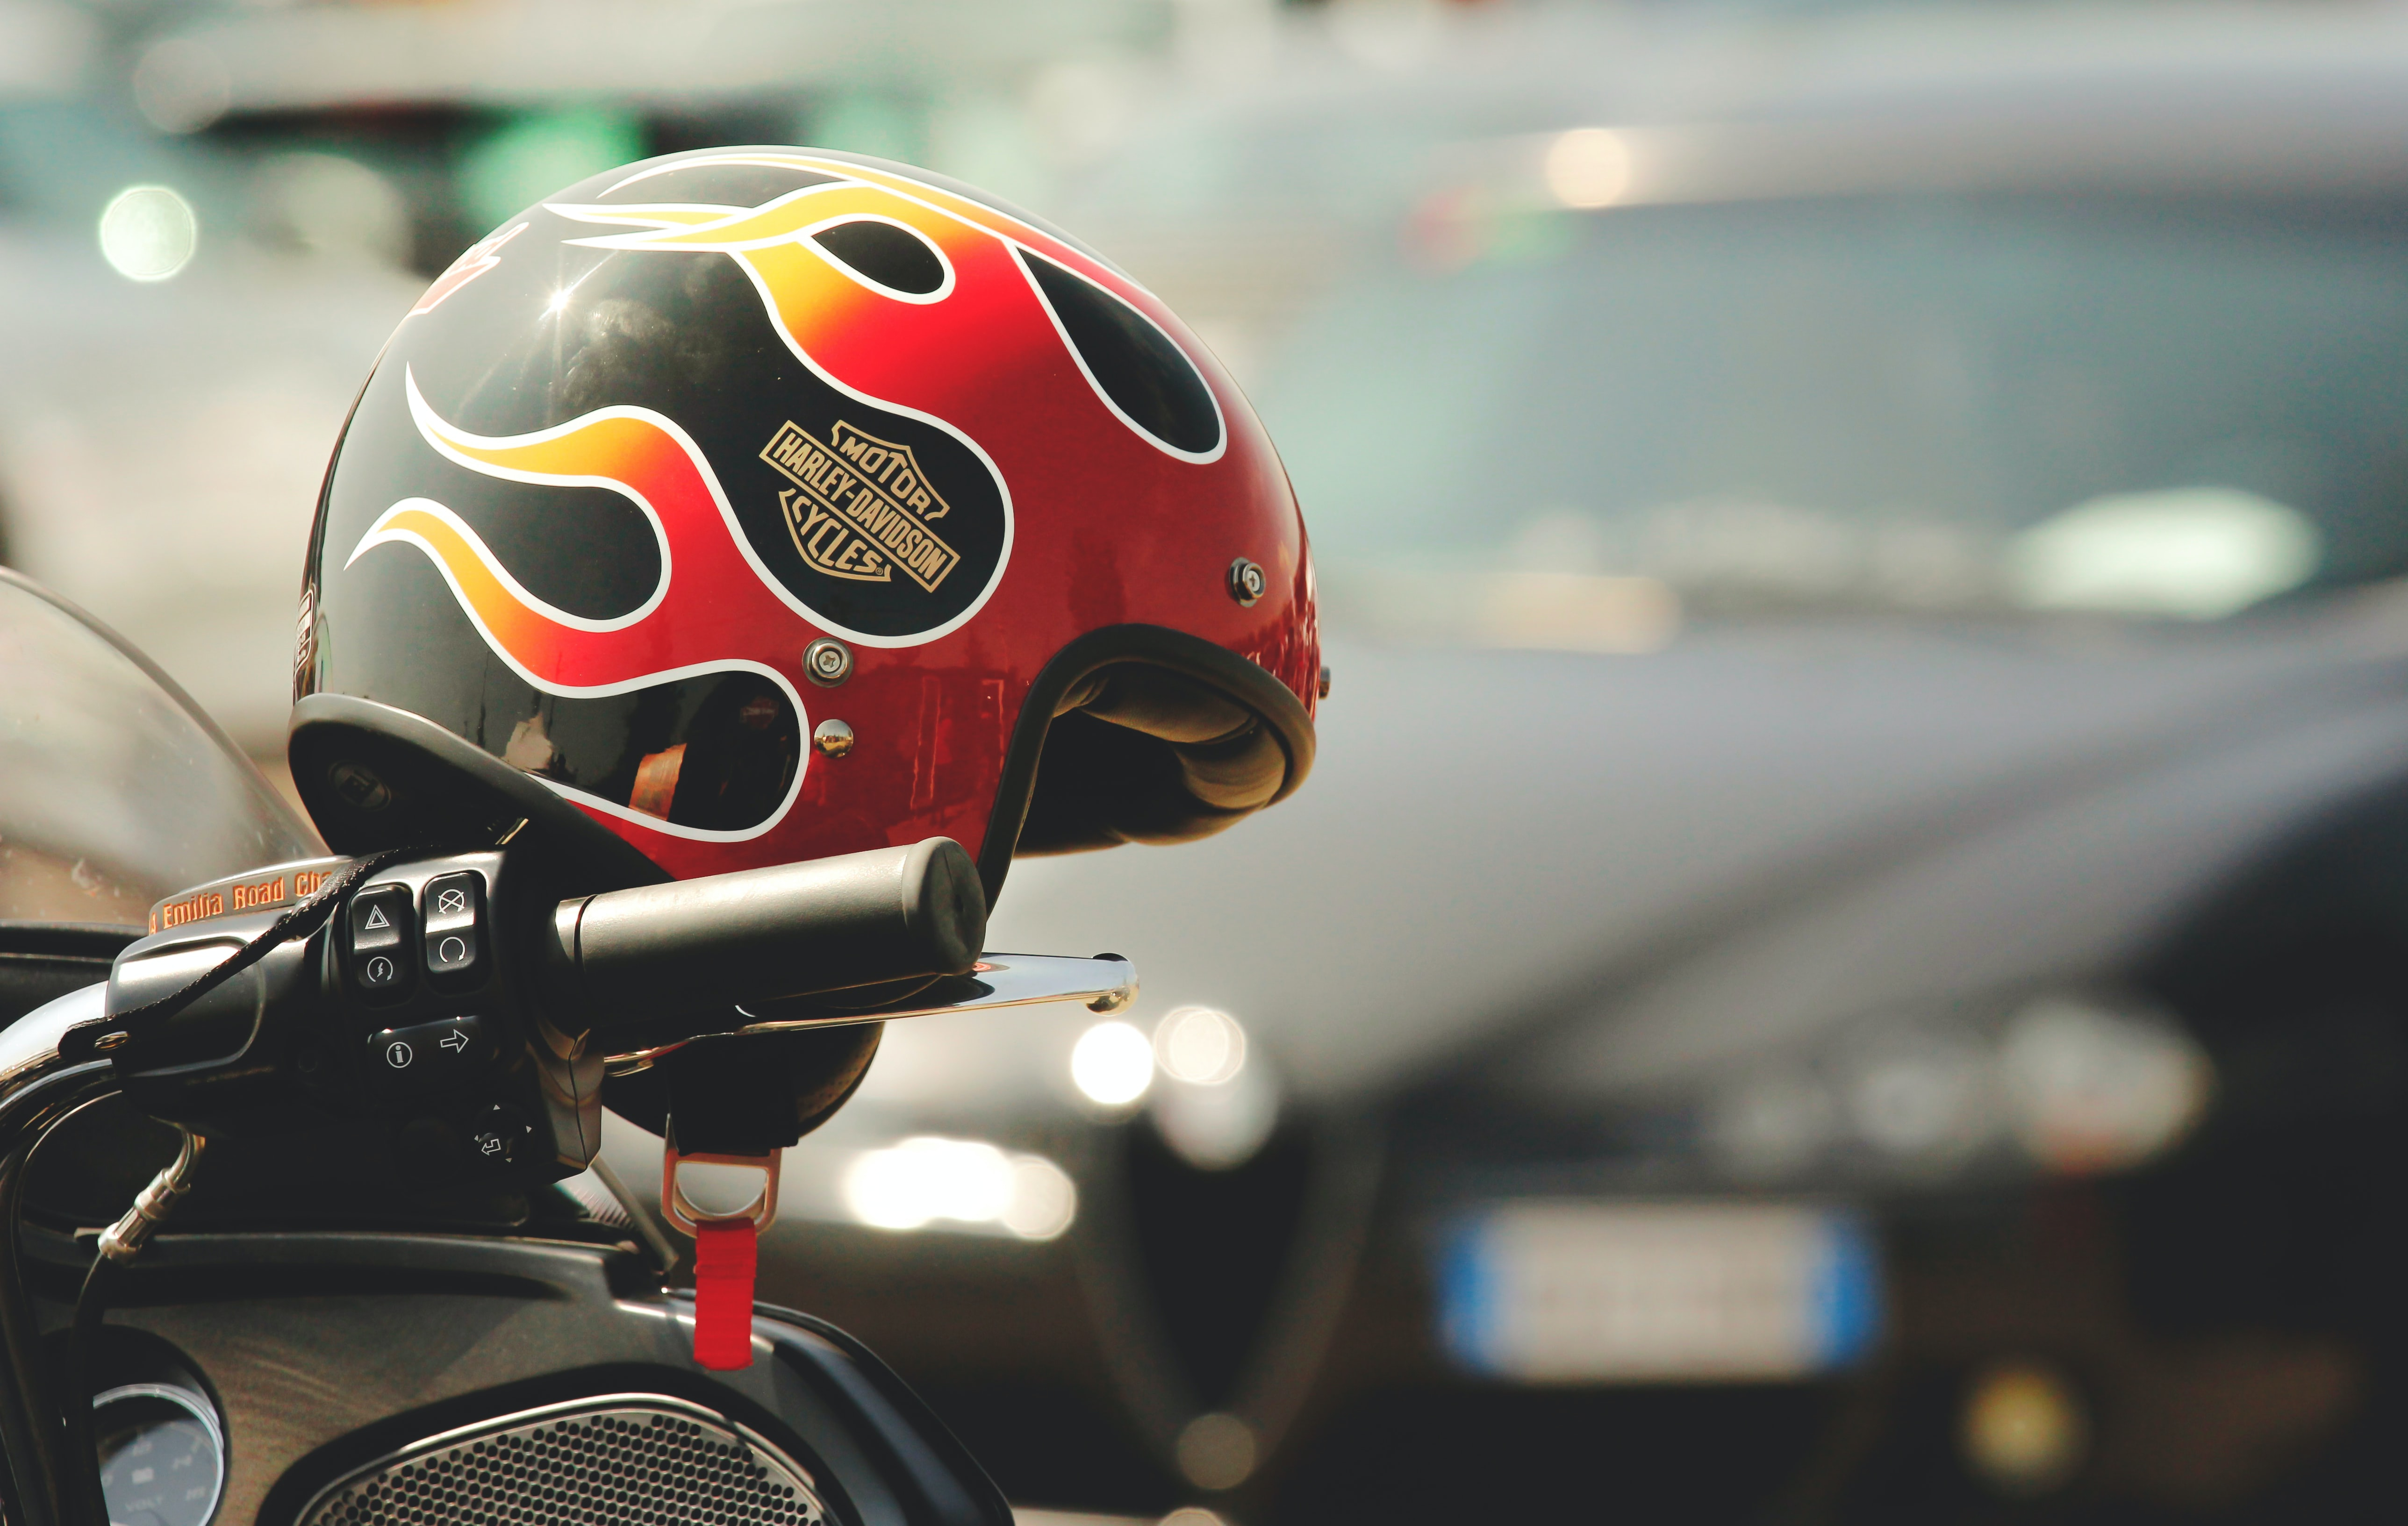 selective focus photograph of red and black Harley-Davidson helmet